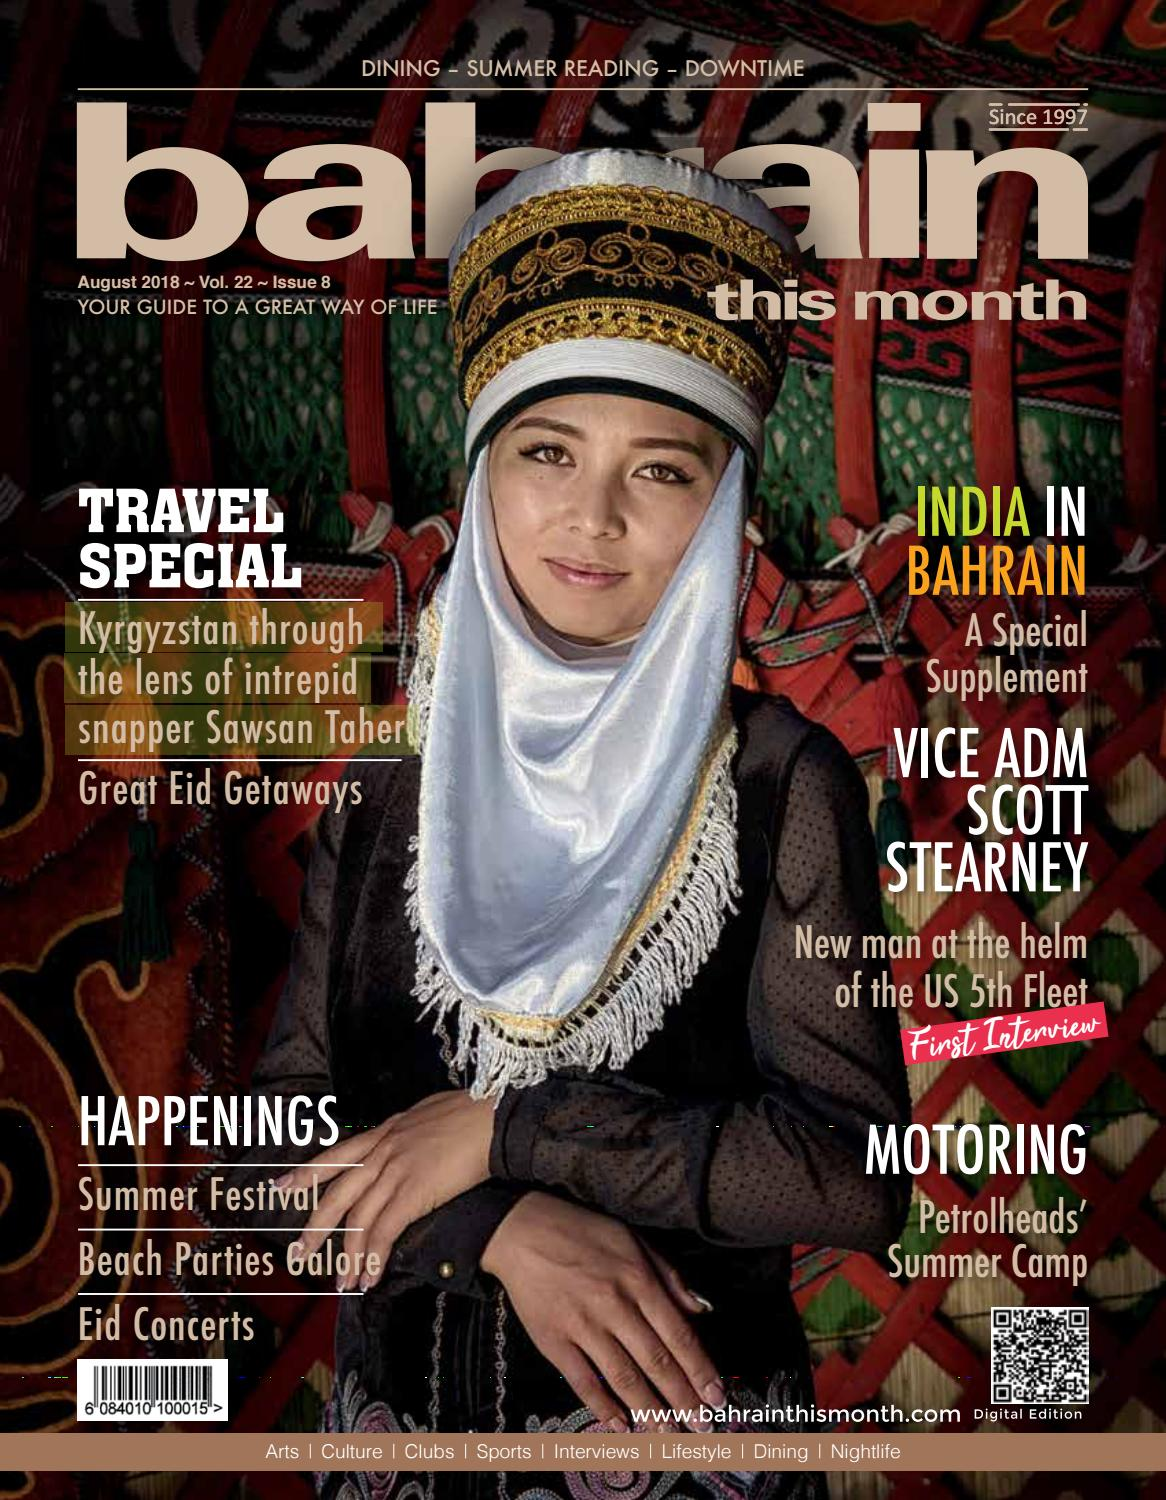 Bahrain This Month - August 2018 by Red House Marketing - issuu